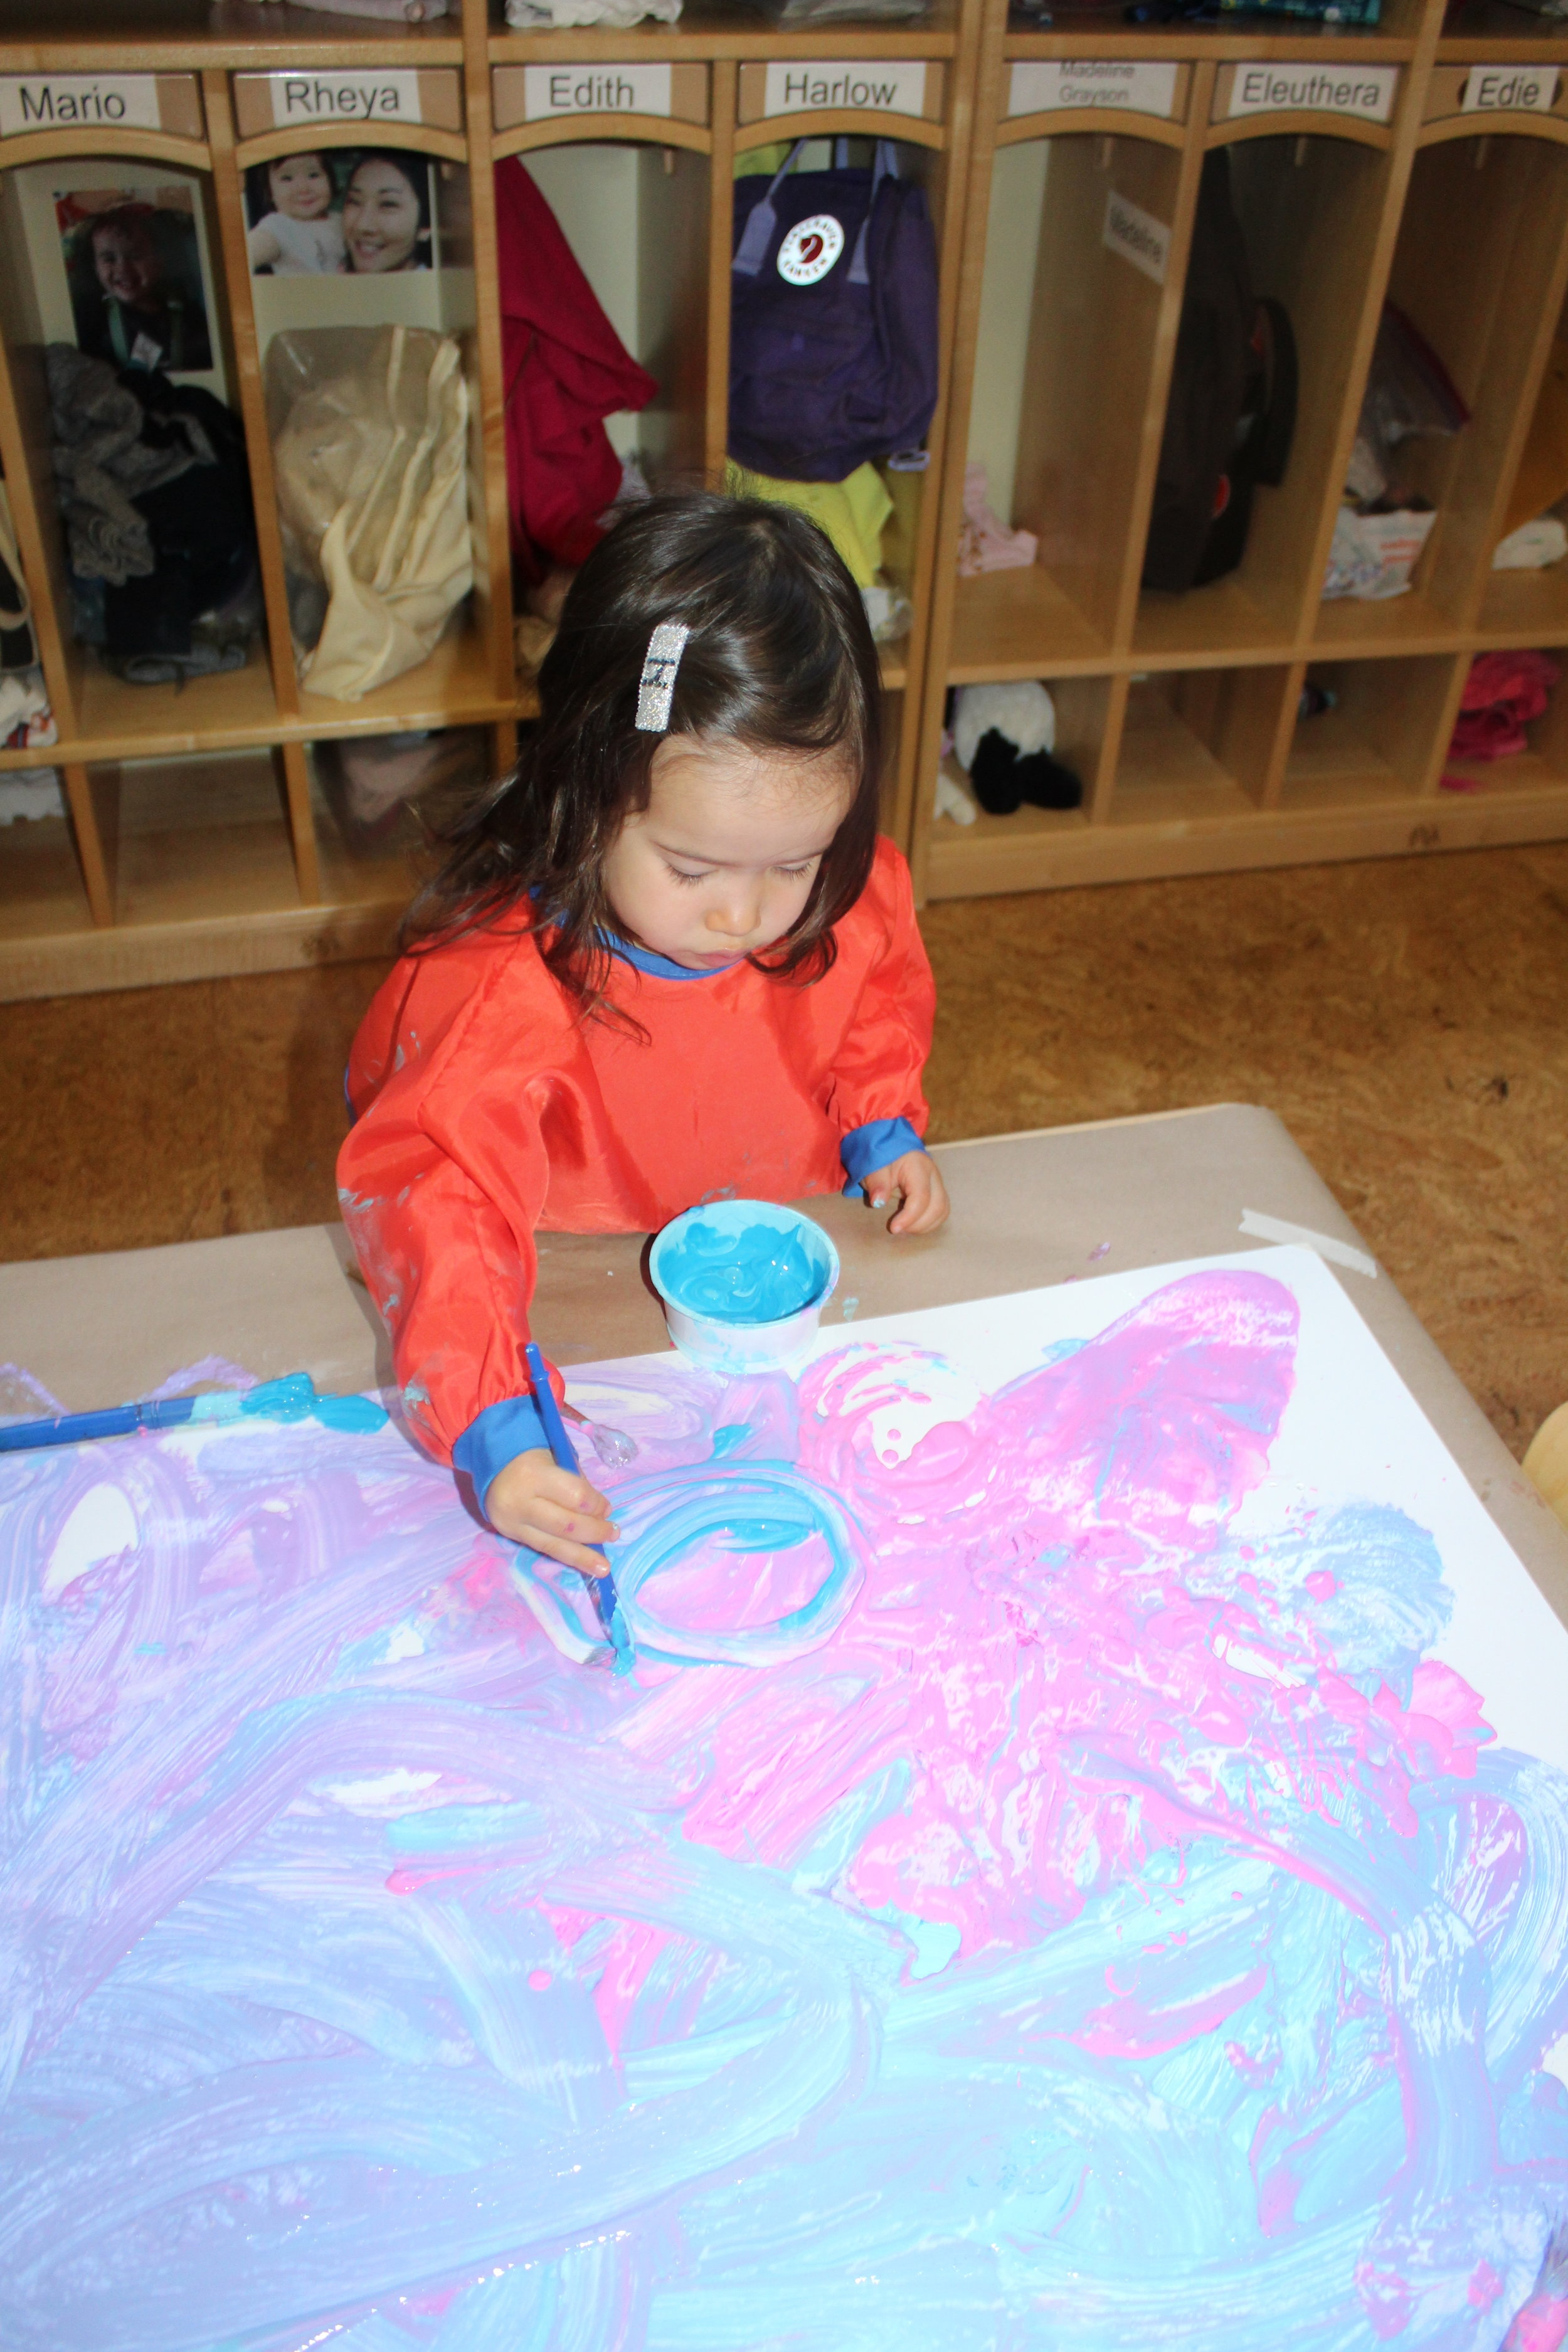 """Painting provides texture and color exploration. It enables children to create and become curious as they paint. Combining colors and using a paintbrush or their hands to explore are elements that help them create and discover. As Ellie was mixing the colors and maneuvering the paintbrush, she articulated, """"The moon!"""" Harlow was making circular movements, """"Look Sandra, circles!"""" Painting allows them to express themselves and develop their creativity freely.  Painting with young children not only helps their creative development but it also stimulates their brain. Stimulating children's brain can also improve other areas of their development; for example, developing their fine pincer grip or learning about color mixing."""